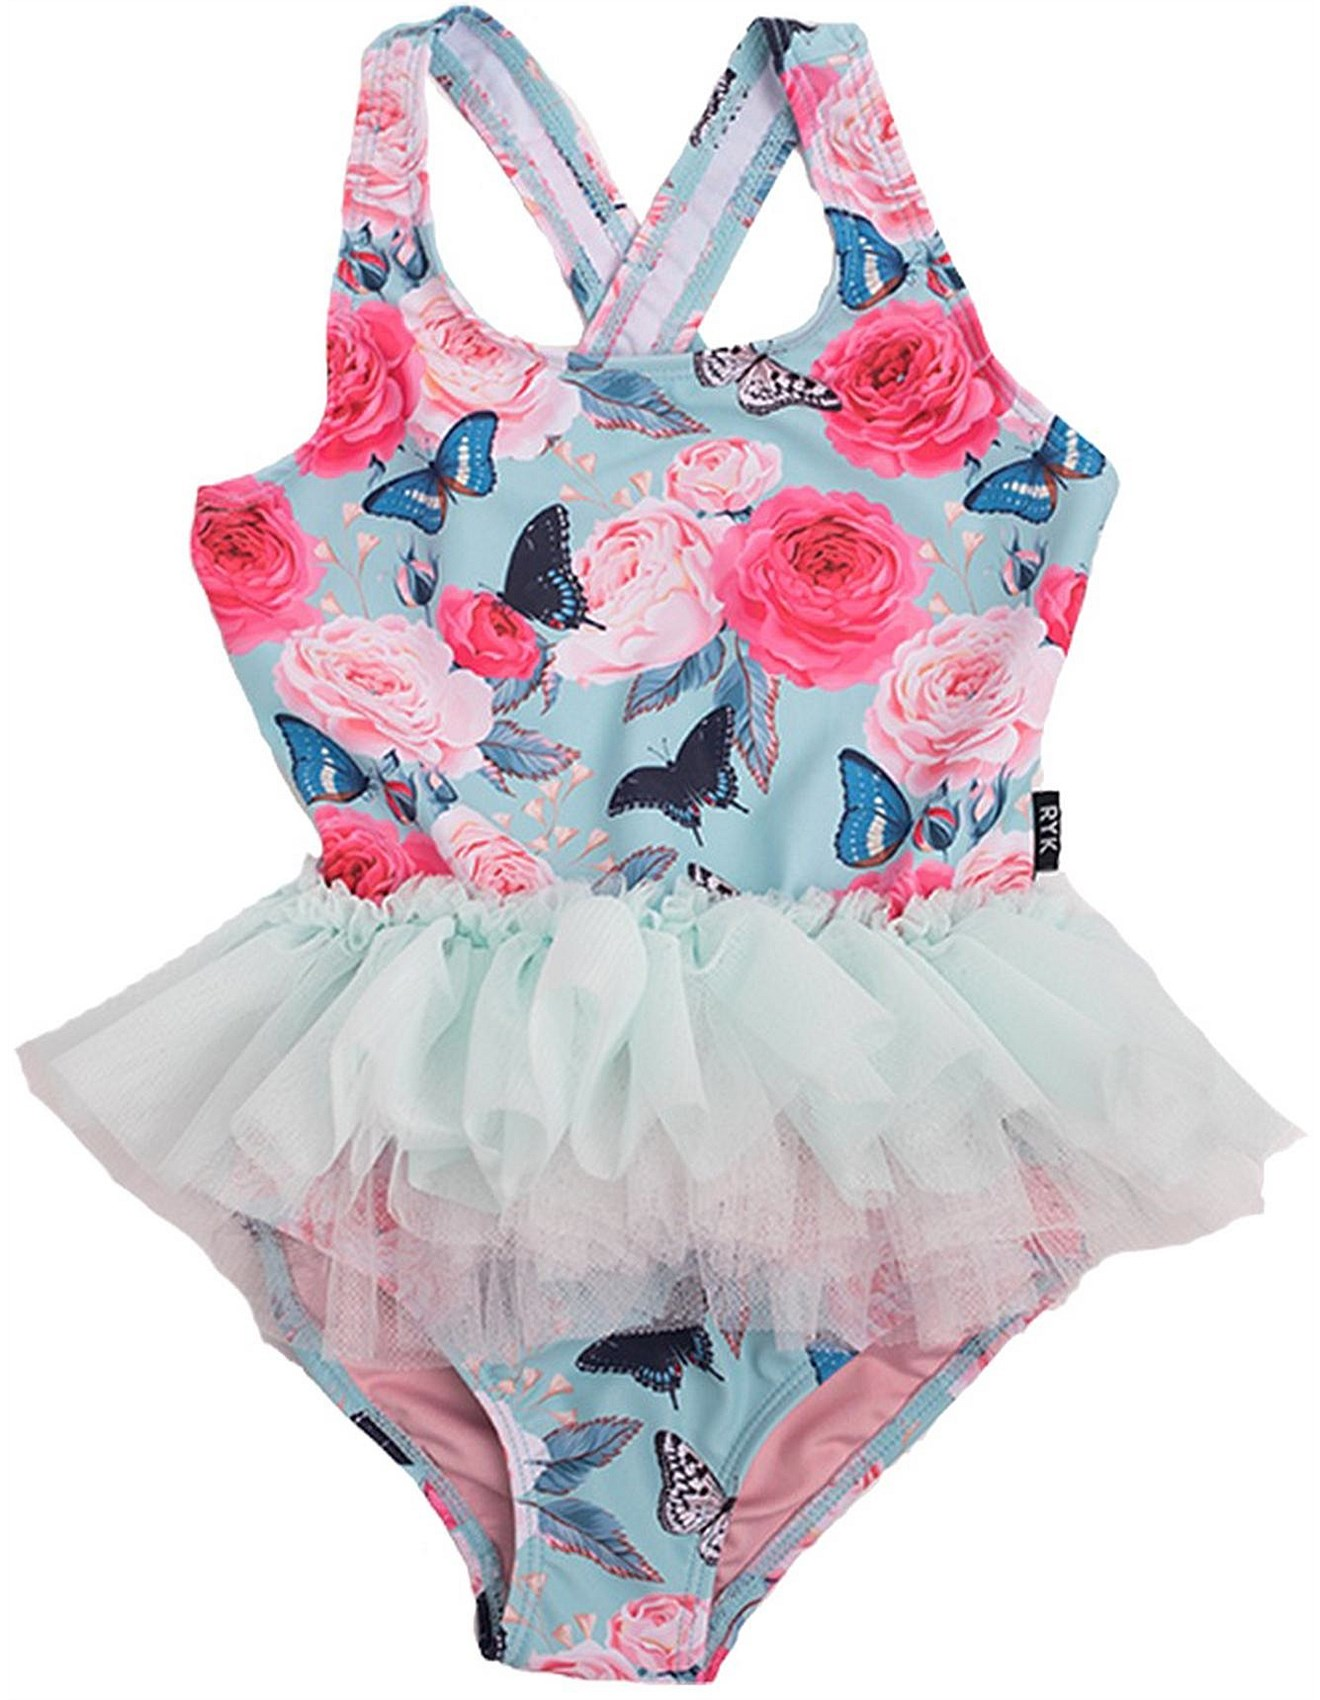 b3b4349fe1ebd Rock Your Kid - Madame Butterfly Tulle One Piece (Girls 2-7 Yrs)